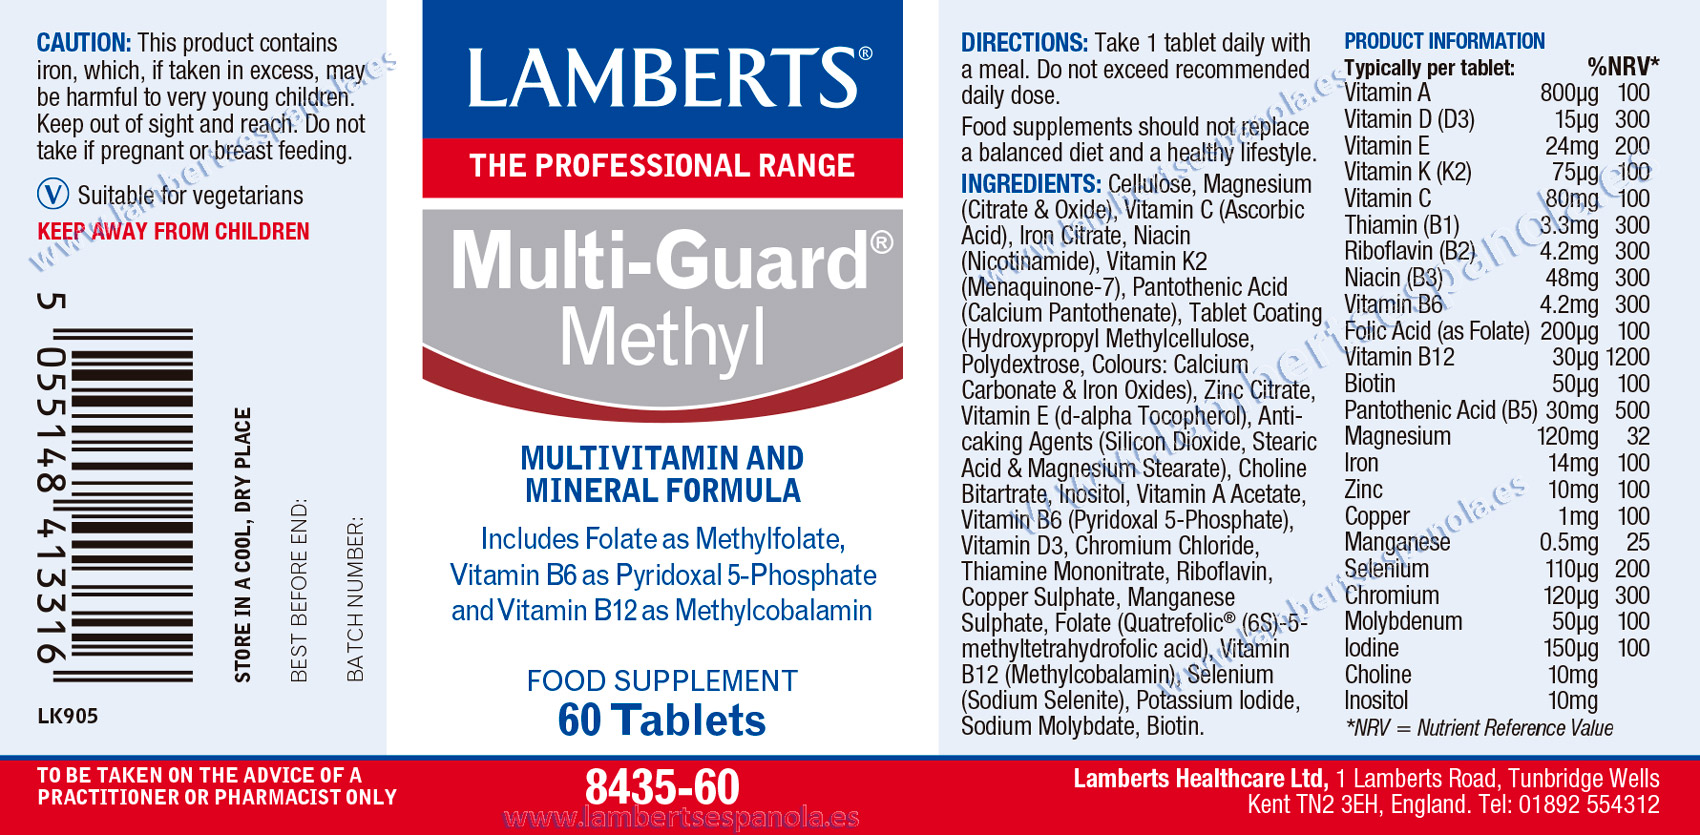 Lamberts Multi Guard Methyl label with propeties and indications